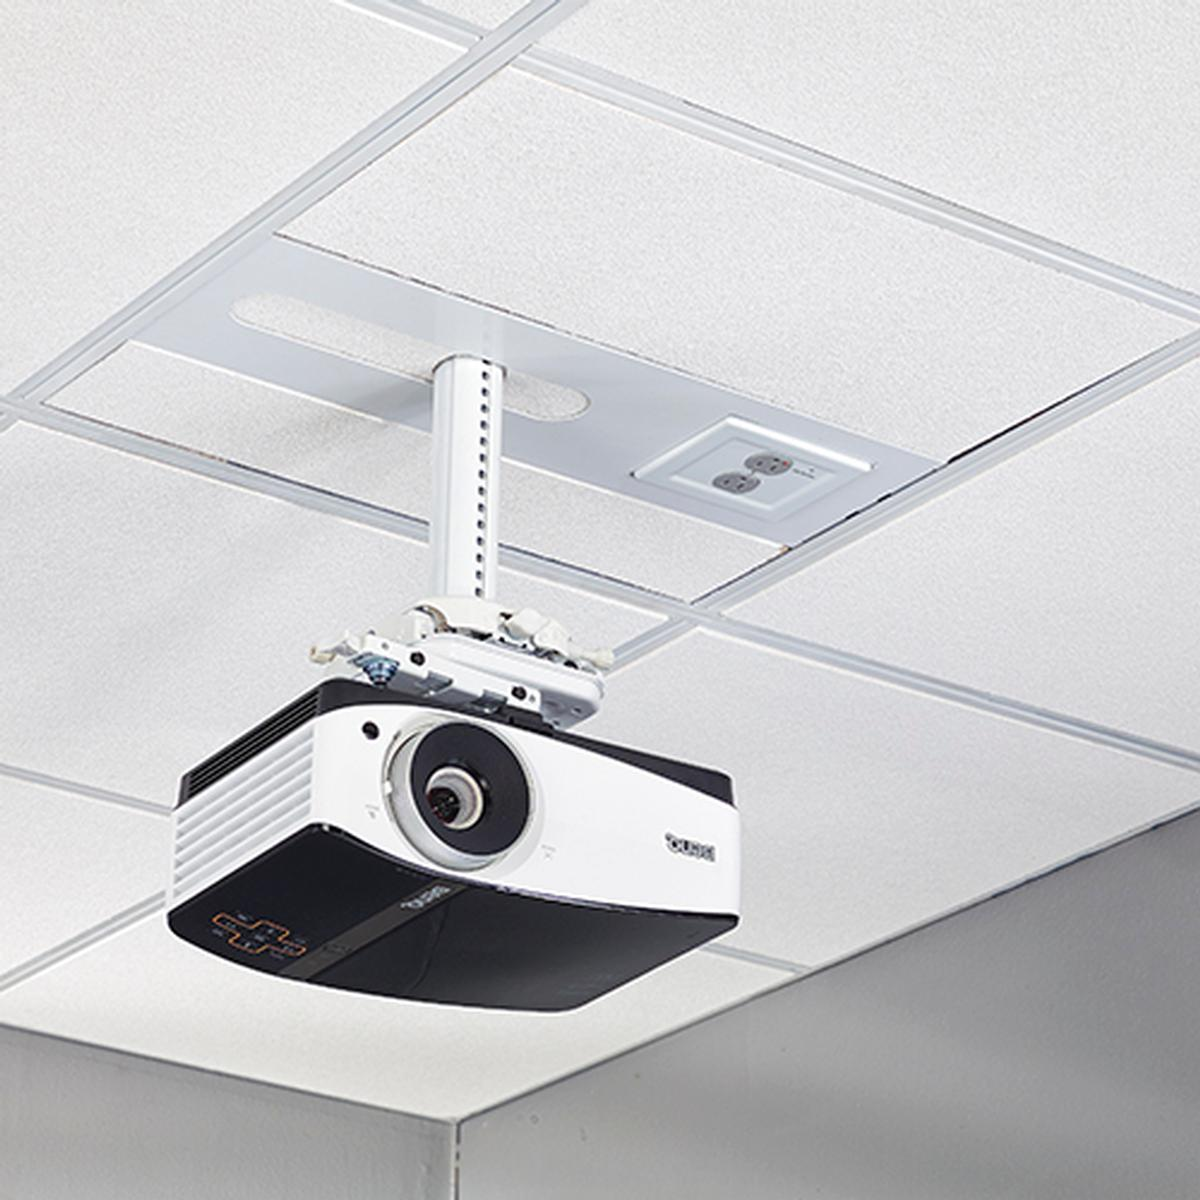 Sysauwp2 Universal Suspended Ceiling Mount Projector